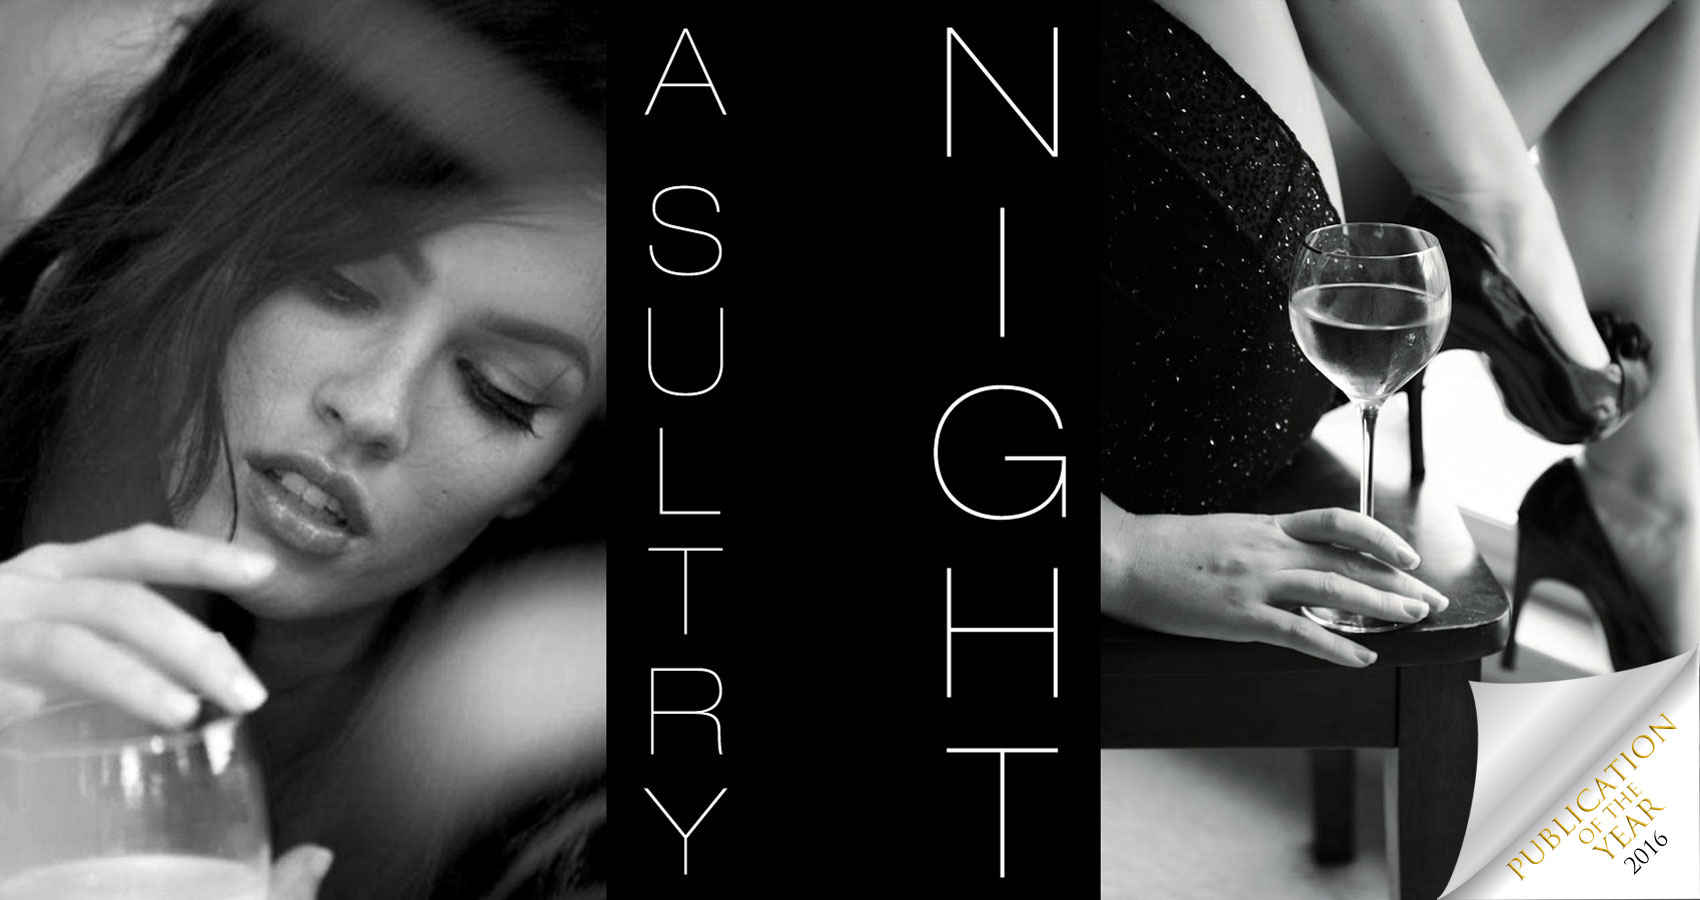 A Sultry Night by Jan Smith at Spillwords.com